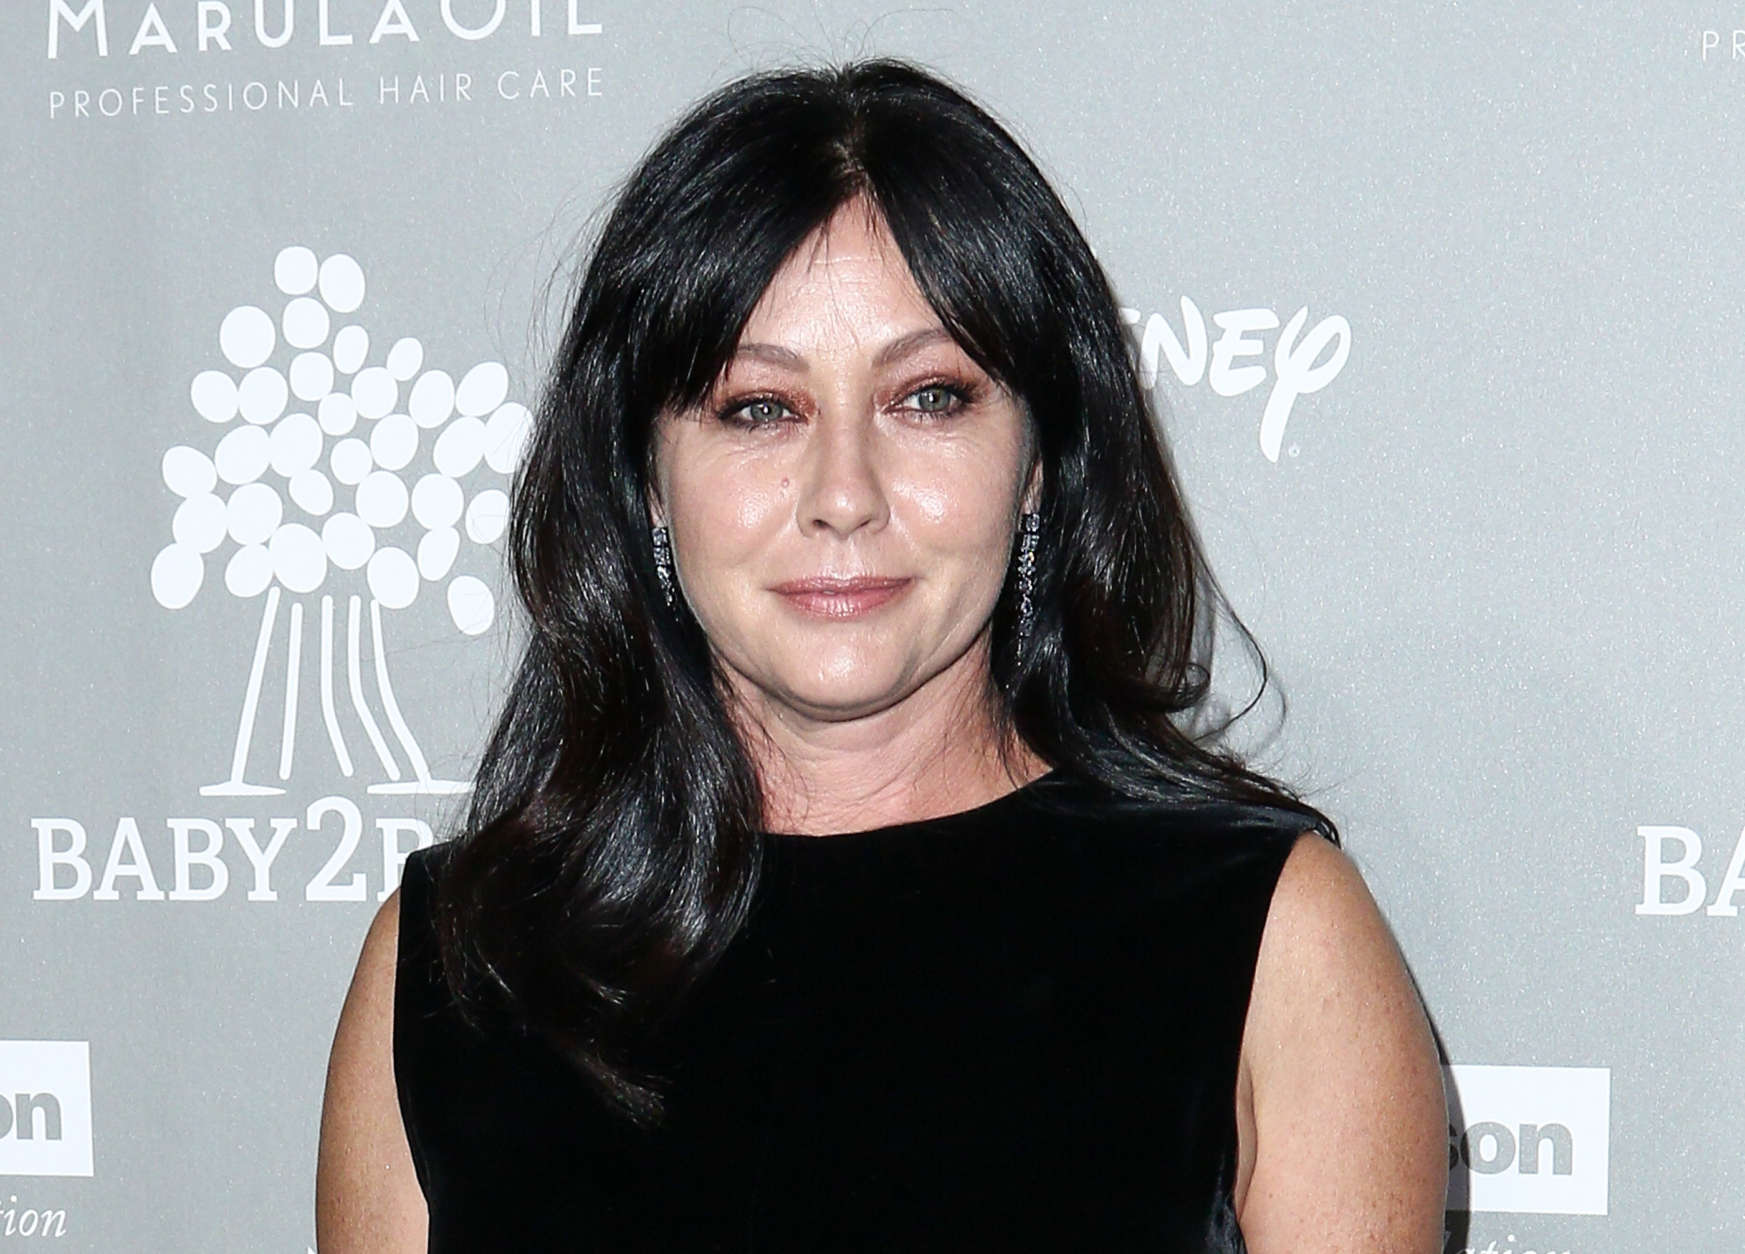 FILE - In this Nov. 14, 2015 file photo, Shannen Doherty attends the 4th Annual Baby2Baby Gala in Culver City, Calif. Court records show Doherty has reached a conditional settlement with her former business managers in a lawsuit in which she accused them of mismanaging her money and causing a lapse in her health insurance that led to a delay in her being diagnosed with breast cancer. The settlement notice filed